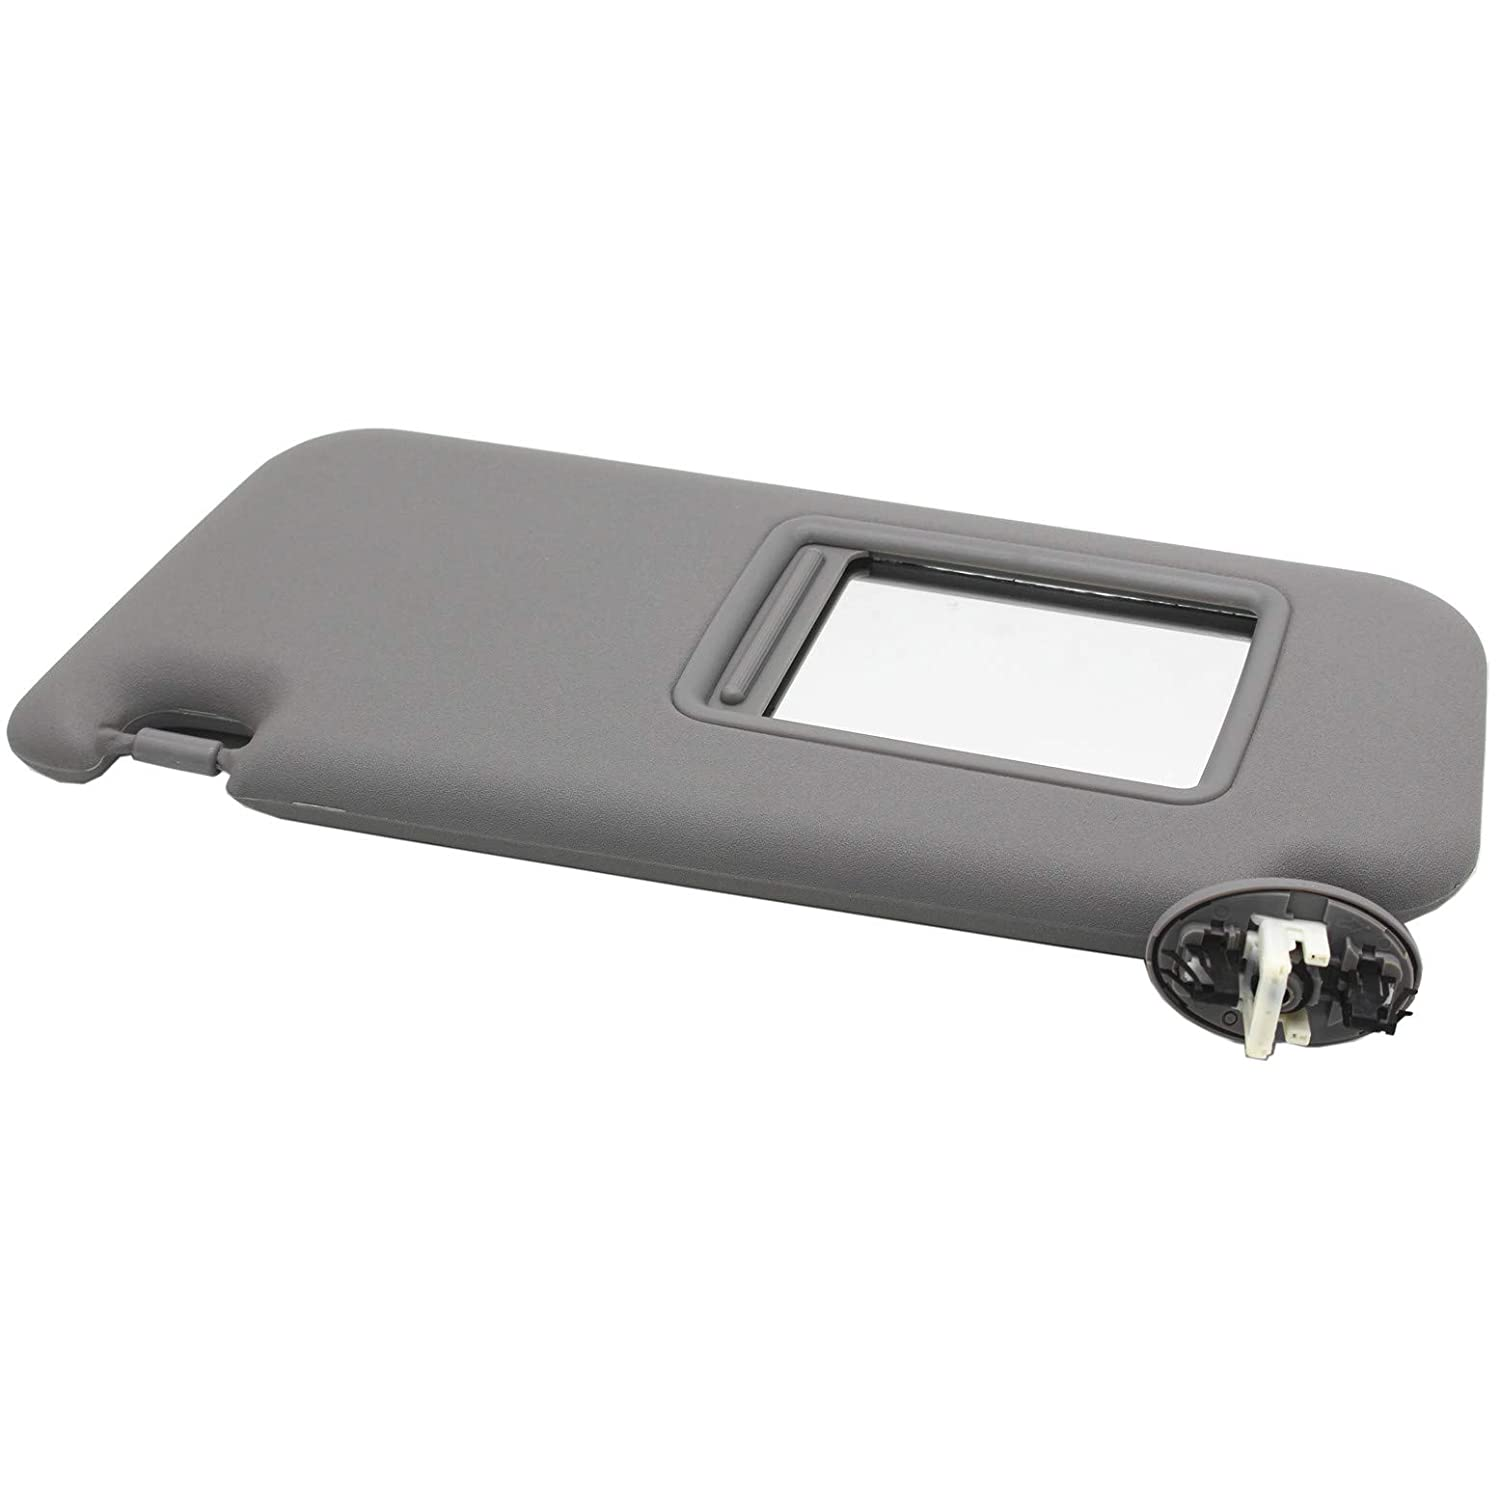 Ezzy Auto Gray Left Driver Side Sun Visor fit for Toyota RAV4 with Sunroof 2006 2007 2008 2009 2010 2011 2012 2013